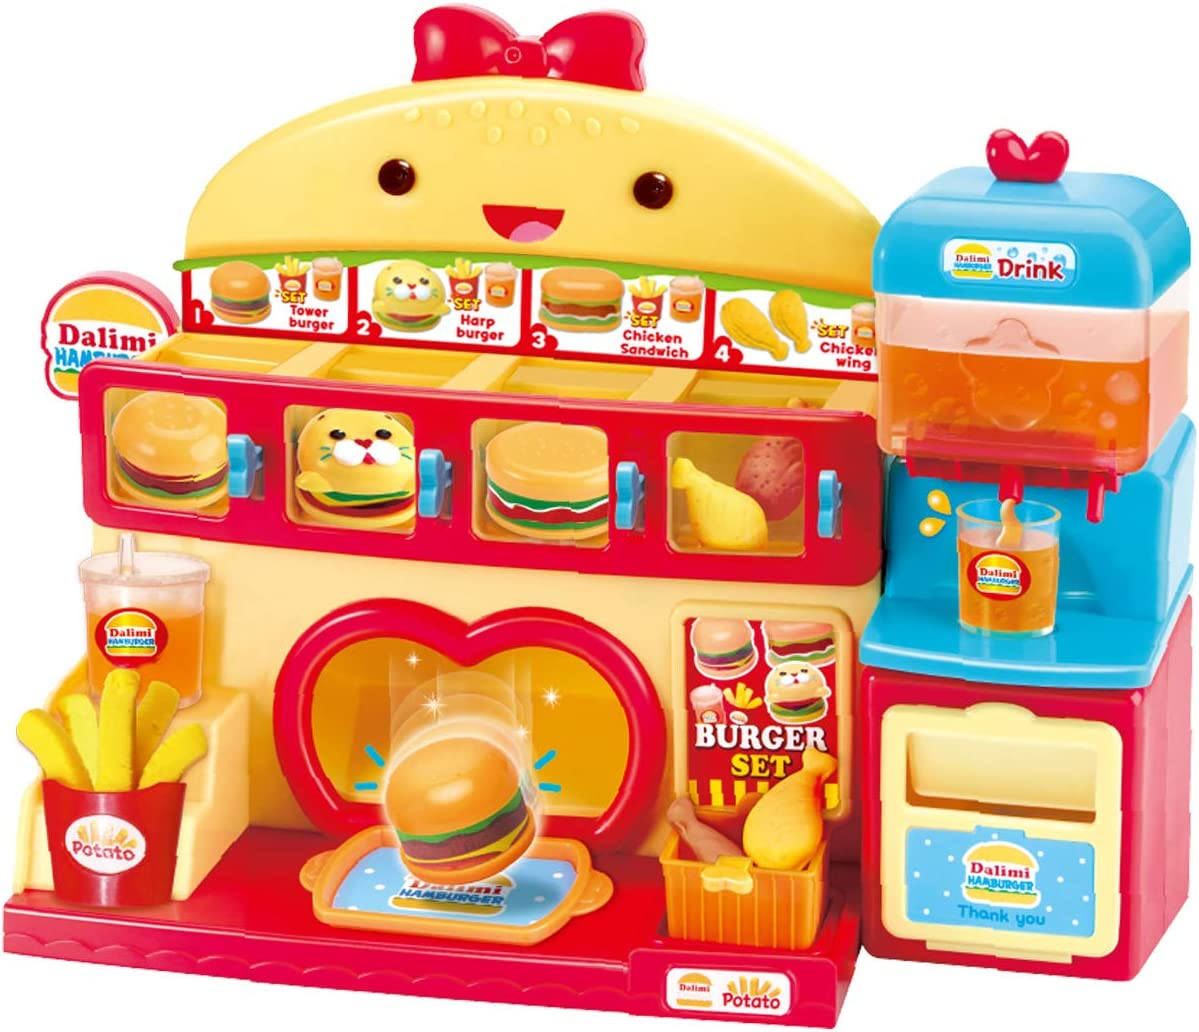 Dalimi TOYTRON, Burger Store Playset for Kids, Fast Food Vending Machine playset for Toddlers Ages 5 Years and Up, Including Magic Clay to Make Fries, Drum Sticks, Pancakes, and Shakes.